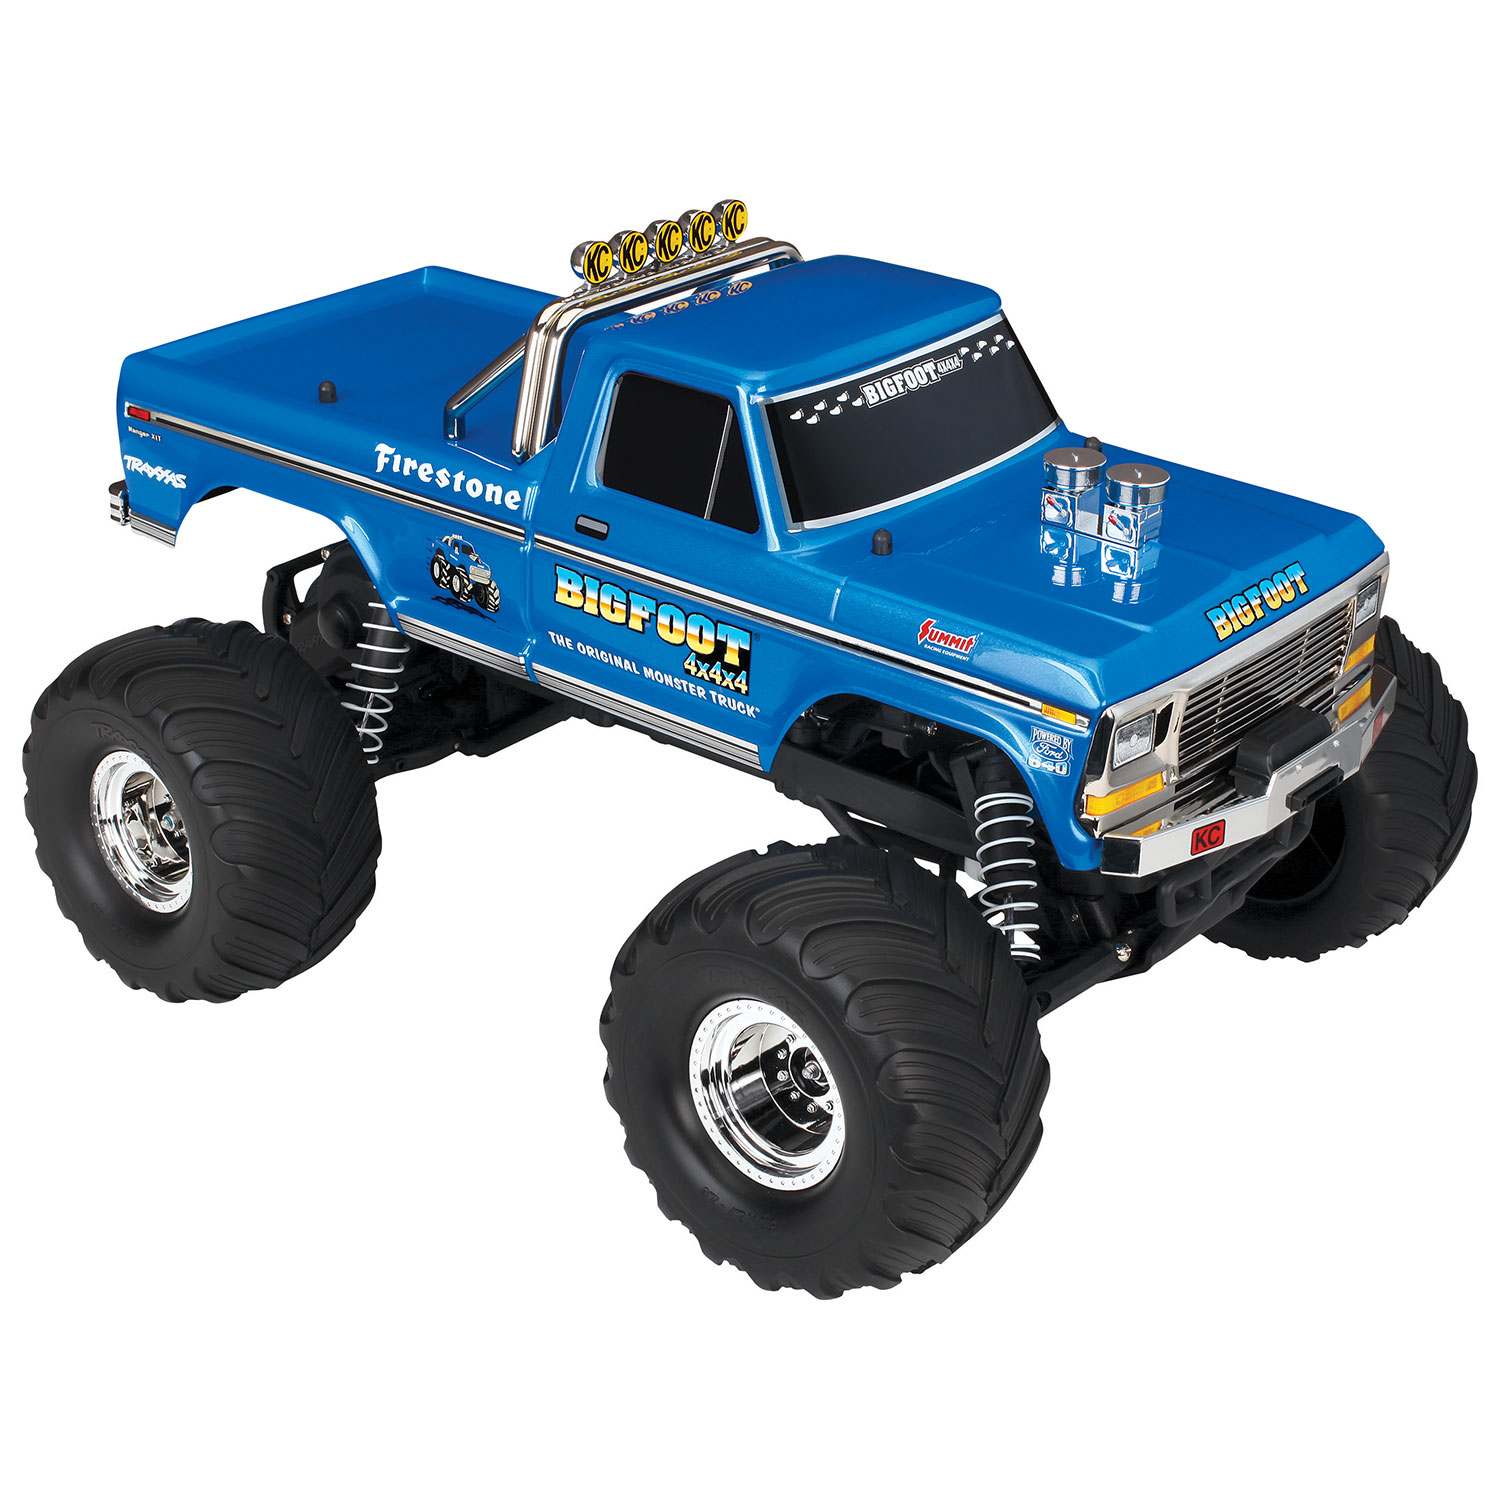 Another model that I just tested this summer and really enjoyed a lot is the incredibly cool Traxxas BIGFOOT No 1 2WD 1 10 Scale RC Truck